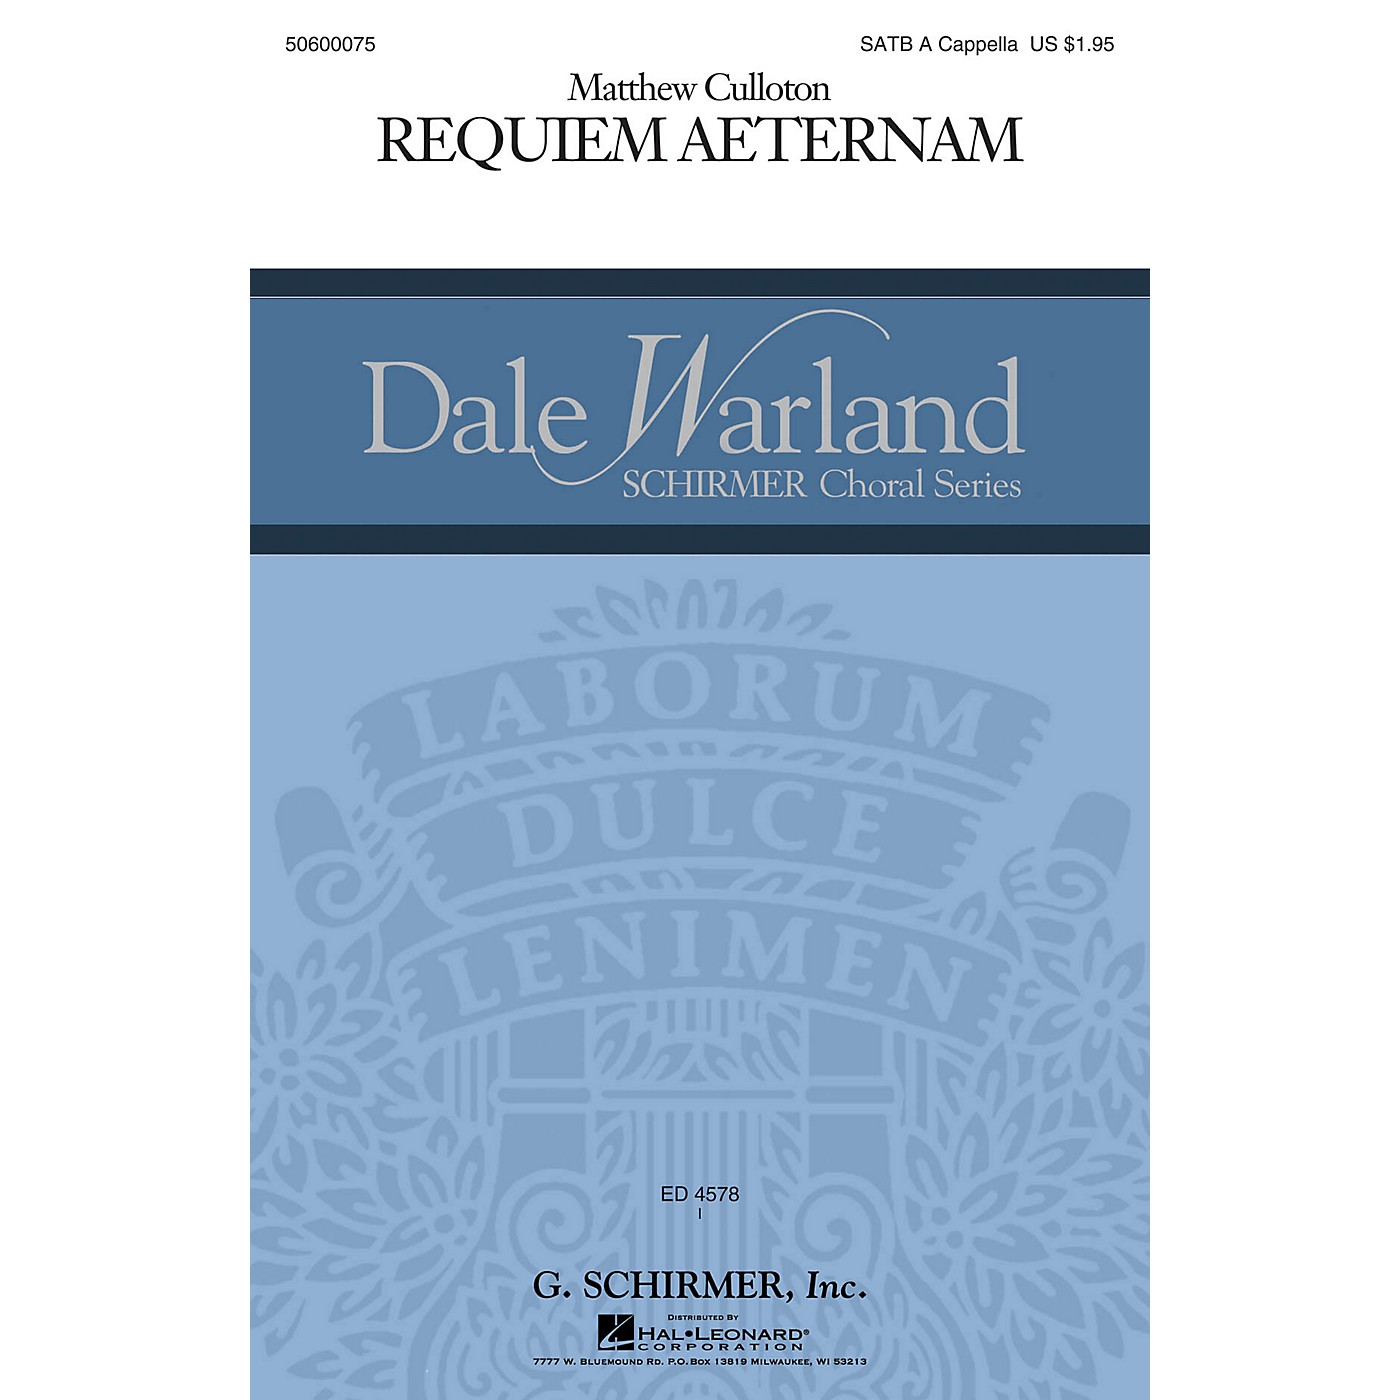 G. Schirmer Requiem Aeternam (Dale Warland Choral Series) SATB a cappella composed by Matthew Culloton thumbnail